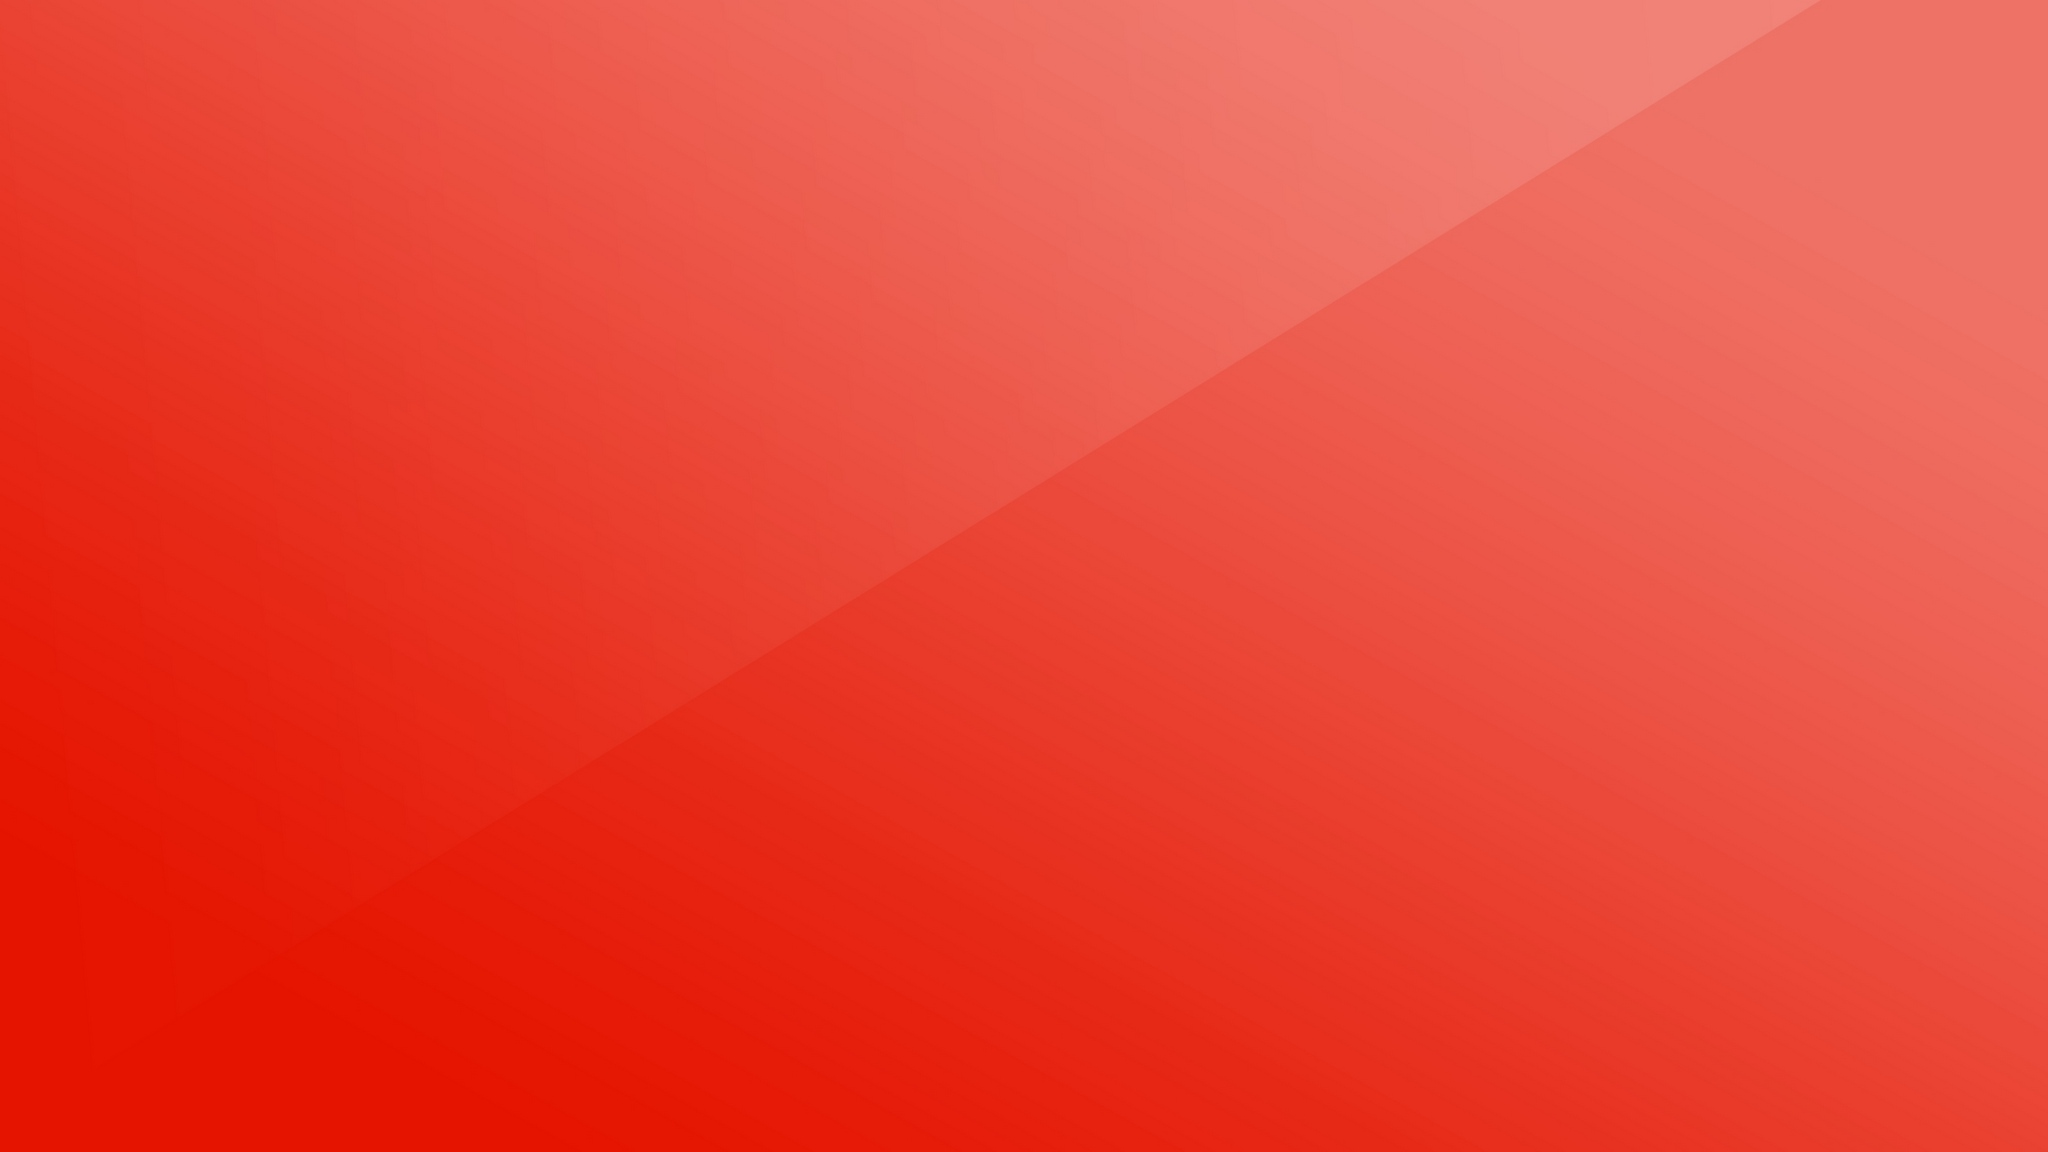 2048x1152 Download wallpaper 2048x1152 red, line, light ultrawide ...